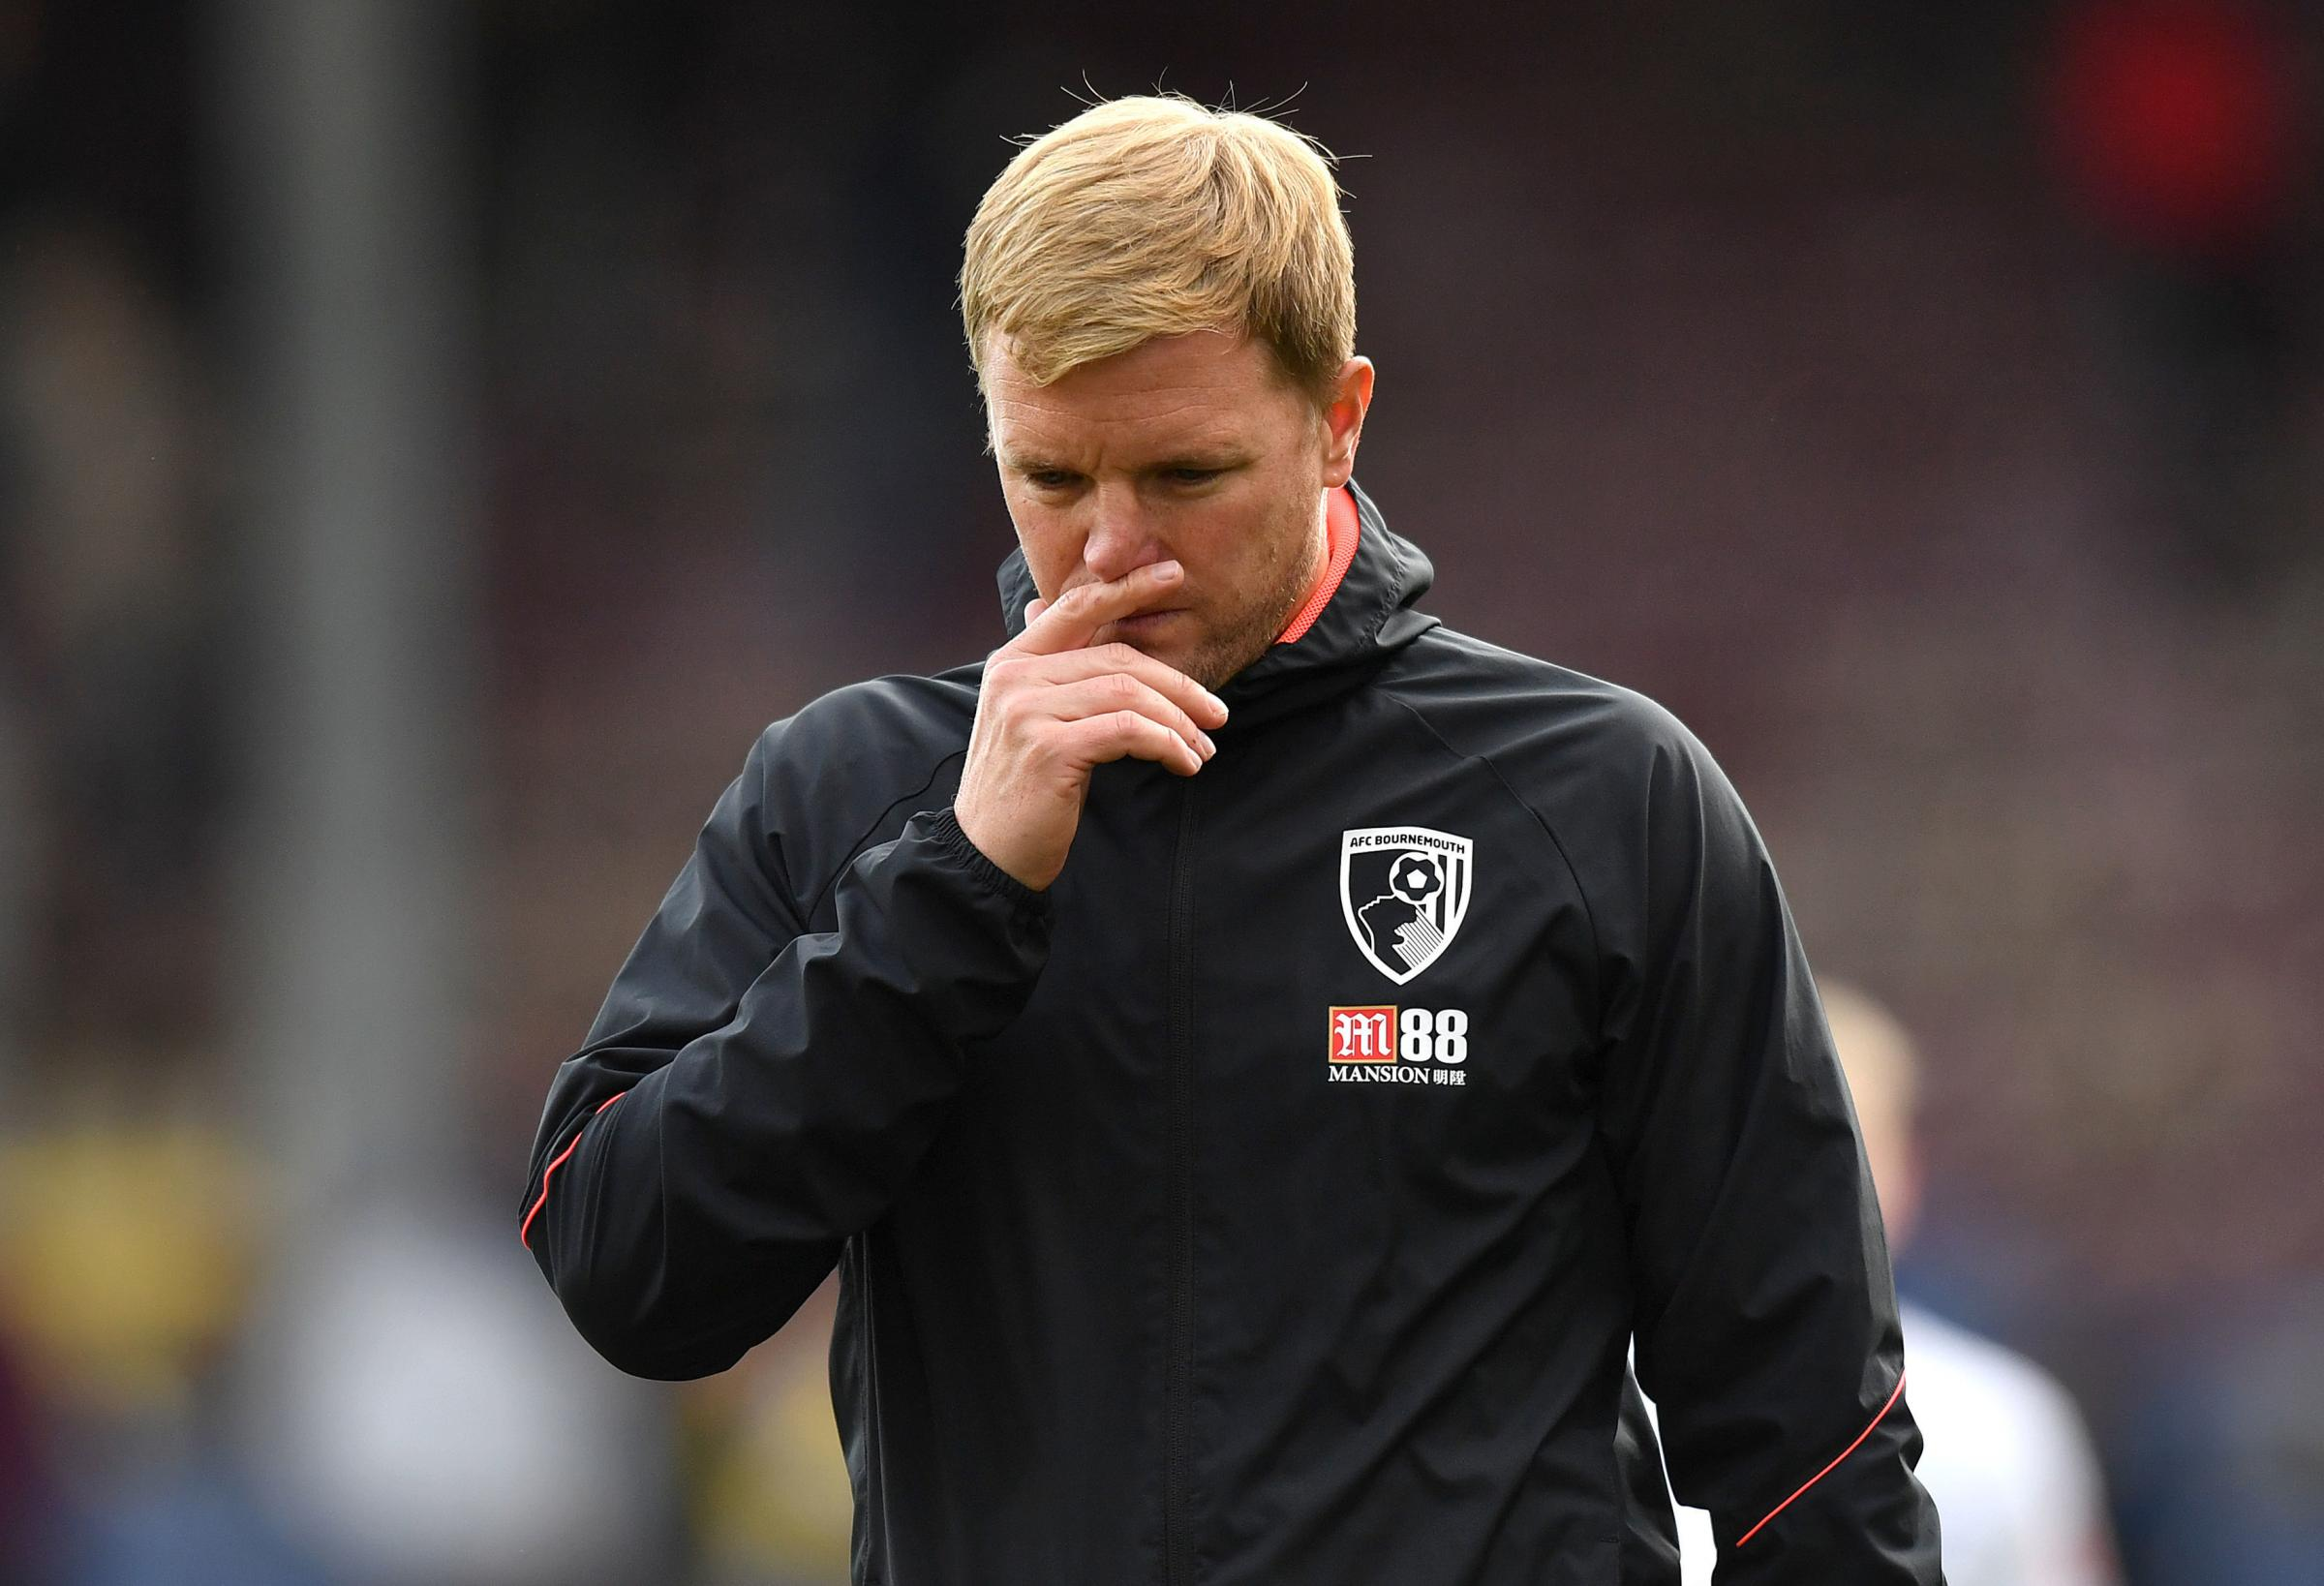 PLENTY TO PONDER: Cherries boss Eddie Howe after seeing his side defeated 4-0 at Turf Moor (Picture: Anthony Devlin/PA Wire)